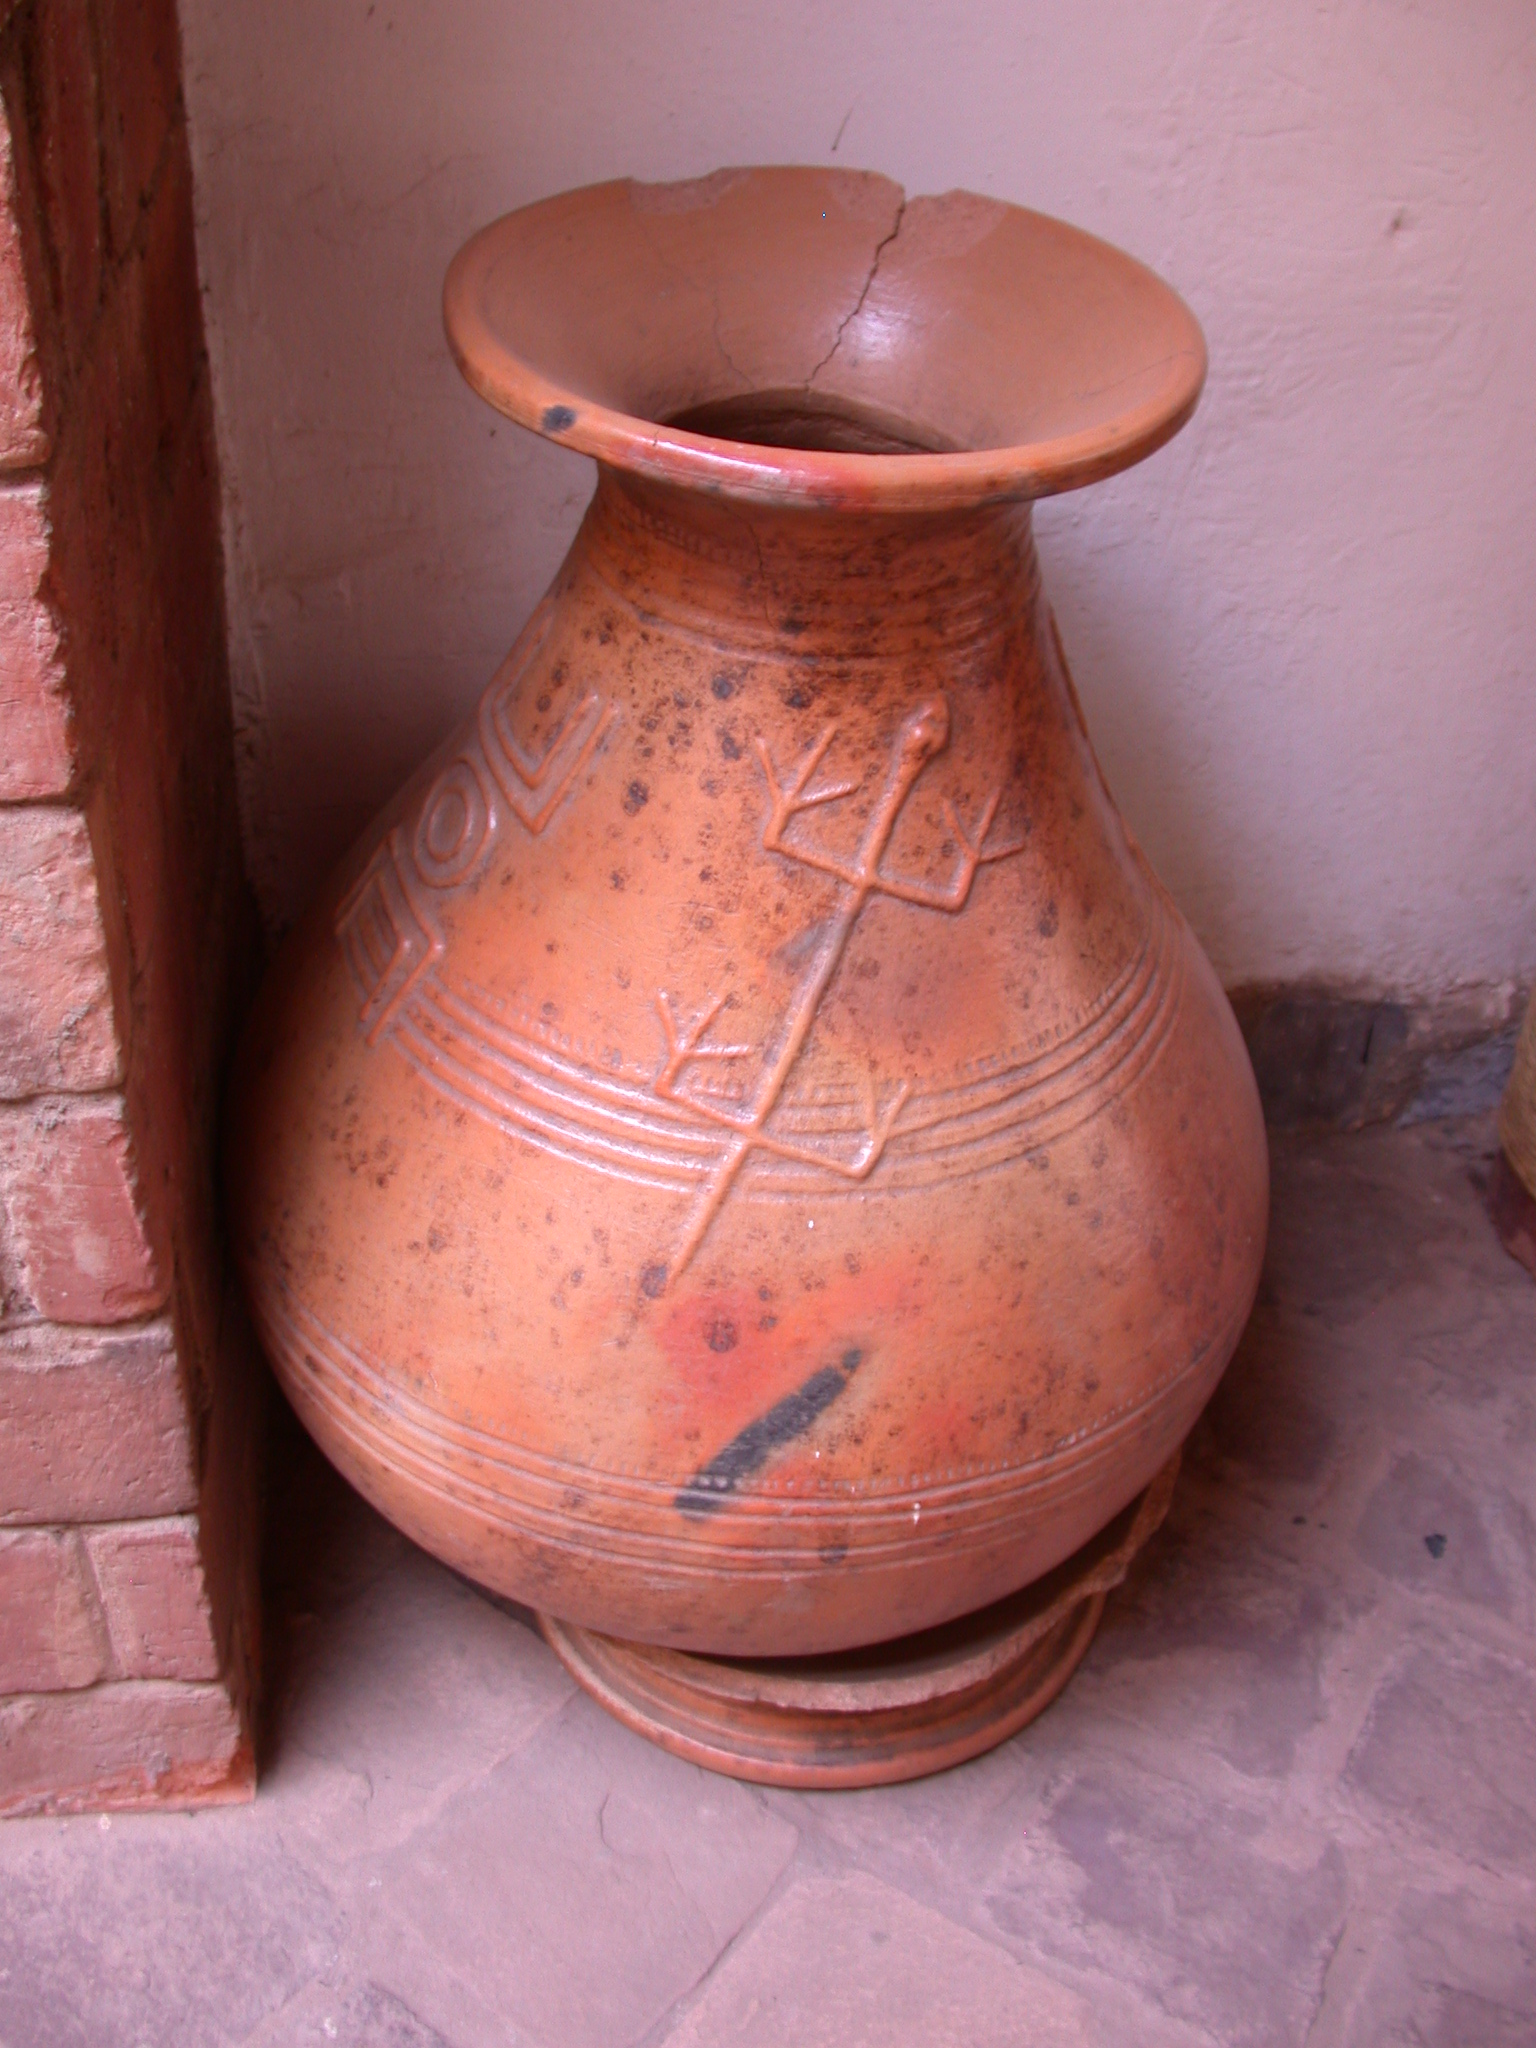 Ceramic Pot With Cool Designs, Main Corridor Downstairs, Hotel Djenne, Bamako, Mali